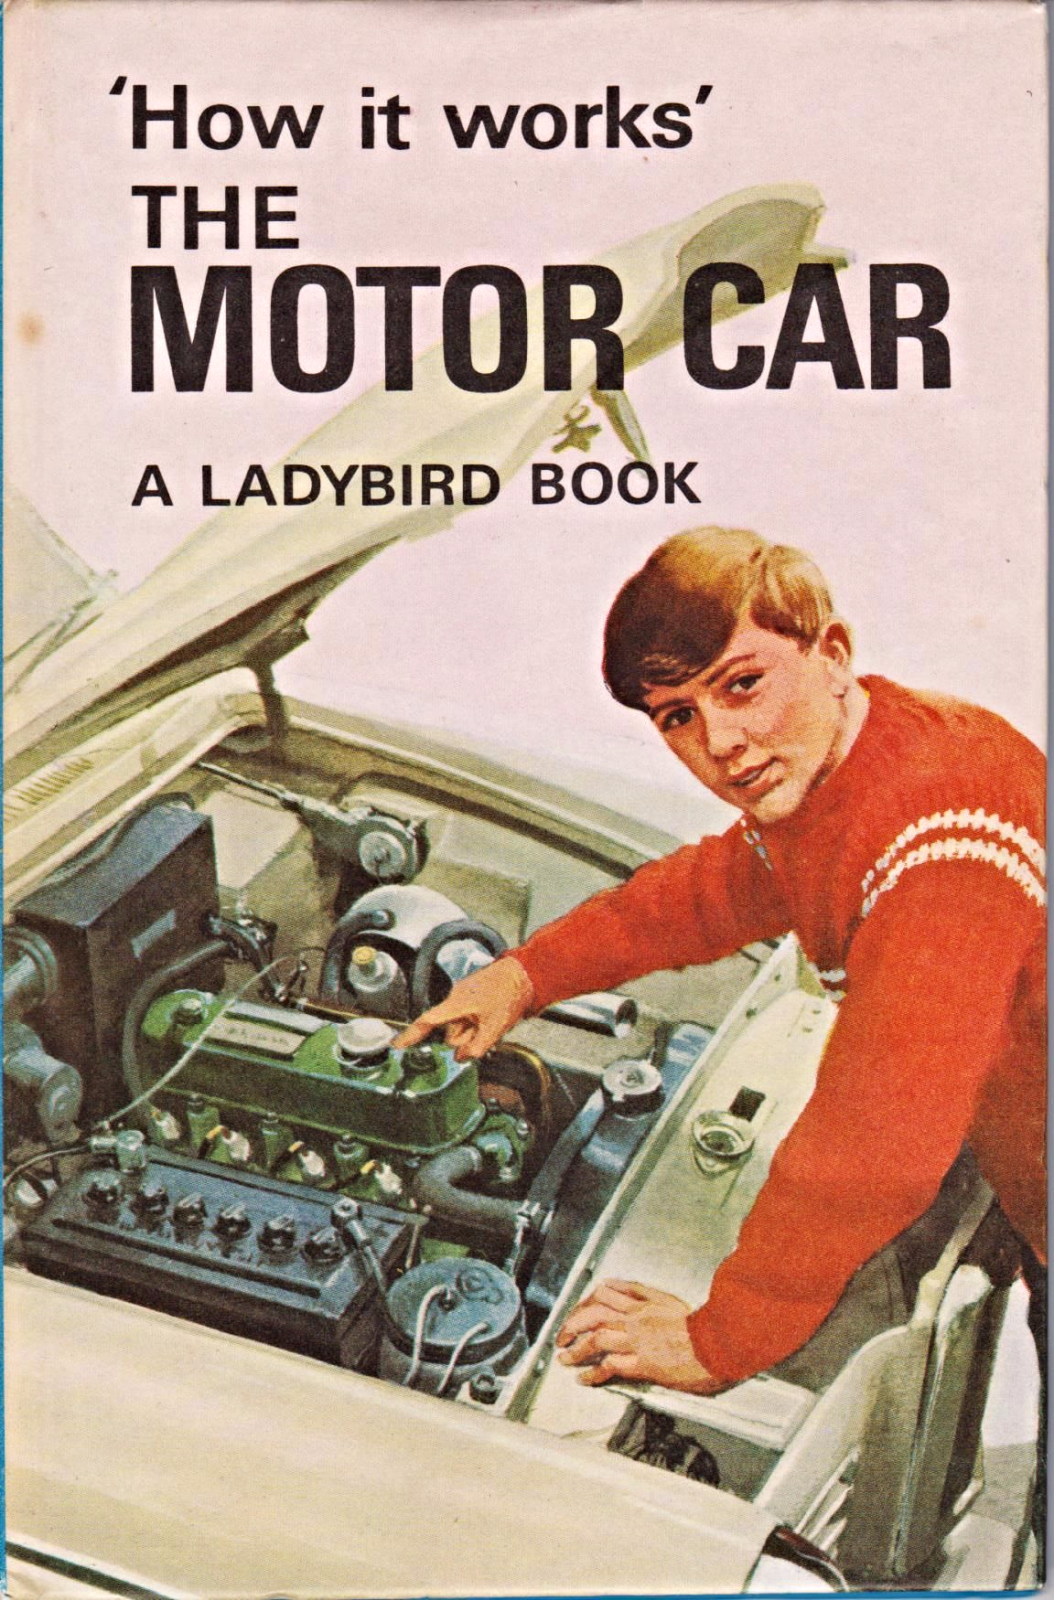 the-motor-car-vintage-ladybird-book-how-it-works-series-654-matte-hardback-1967-8334-p.png